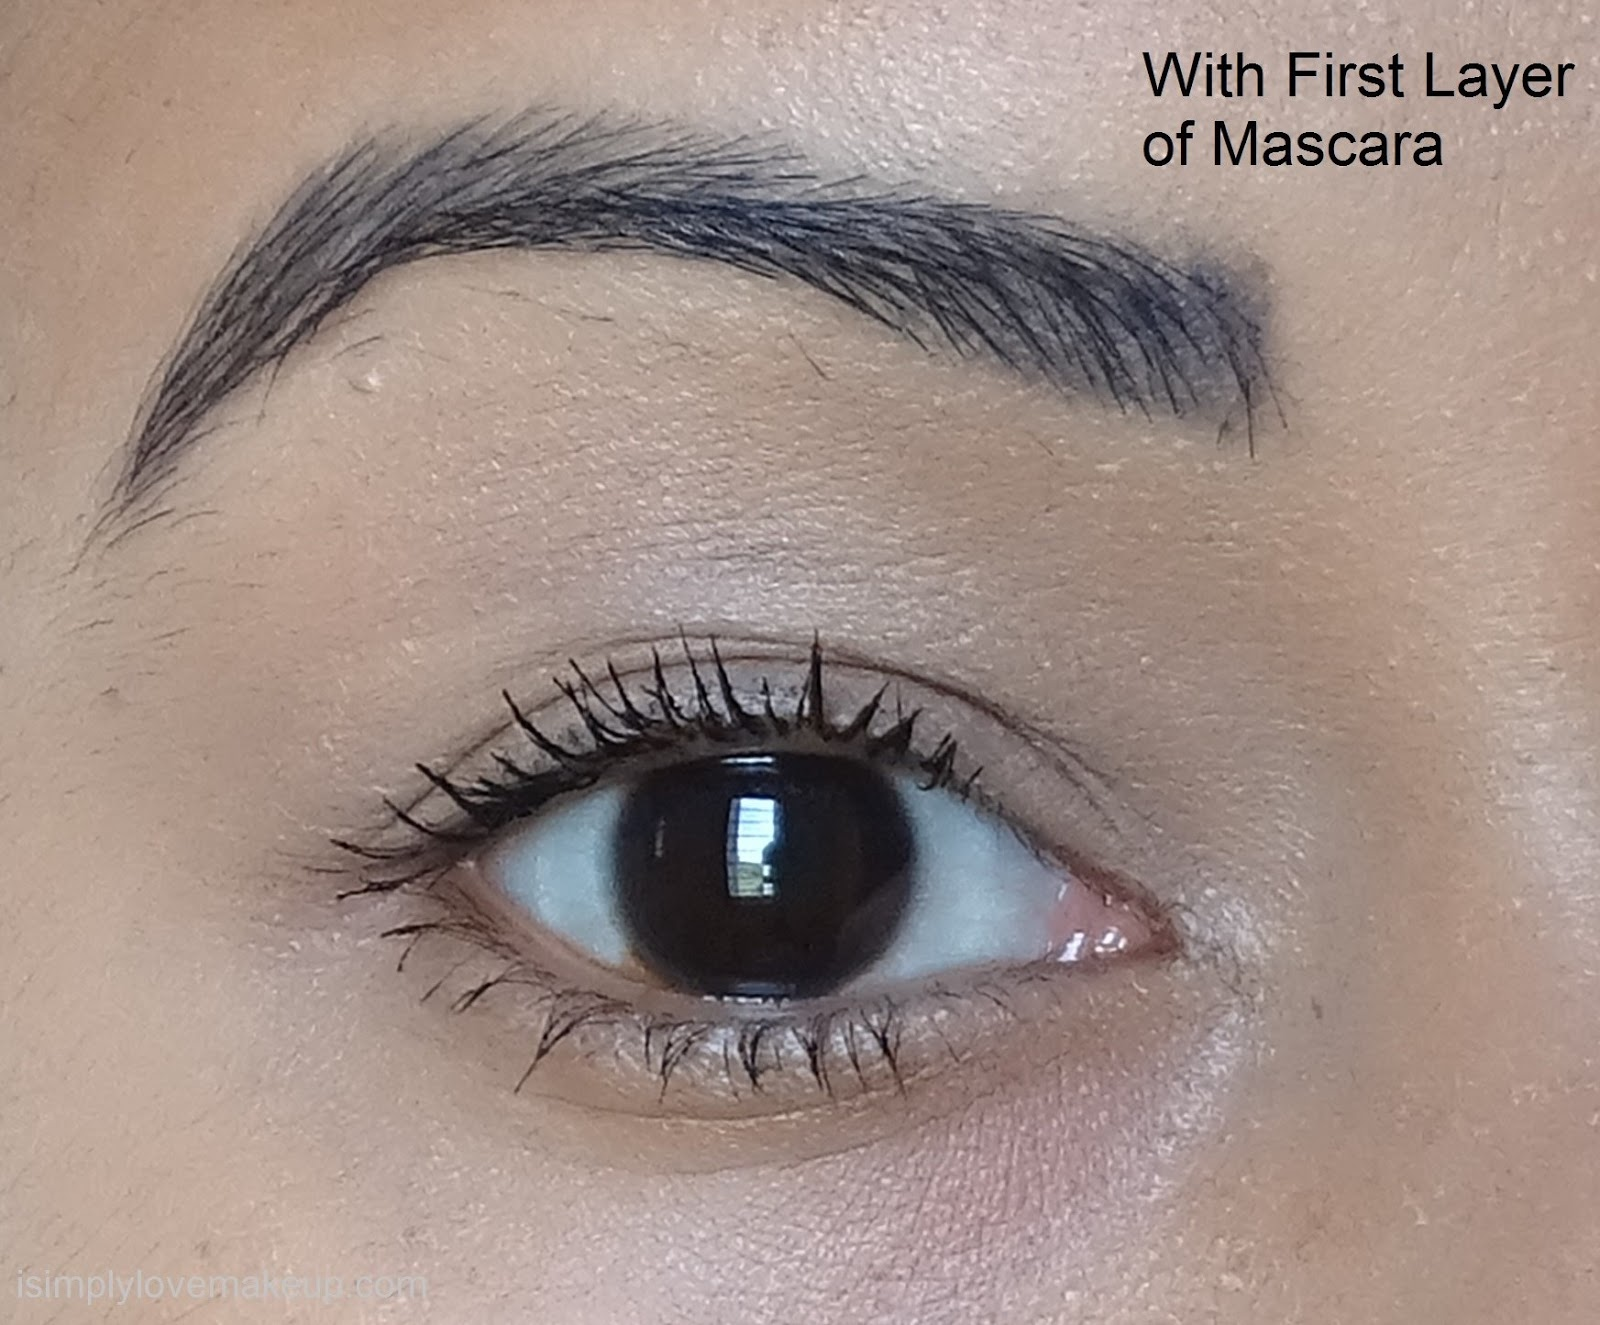 d13331f8bf4 This is the kind of wand that generally lengthening mascaras have and they  are great in prepping the lashes with a thin coat of product.